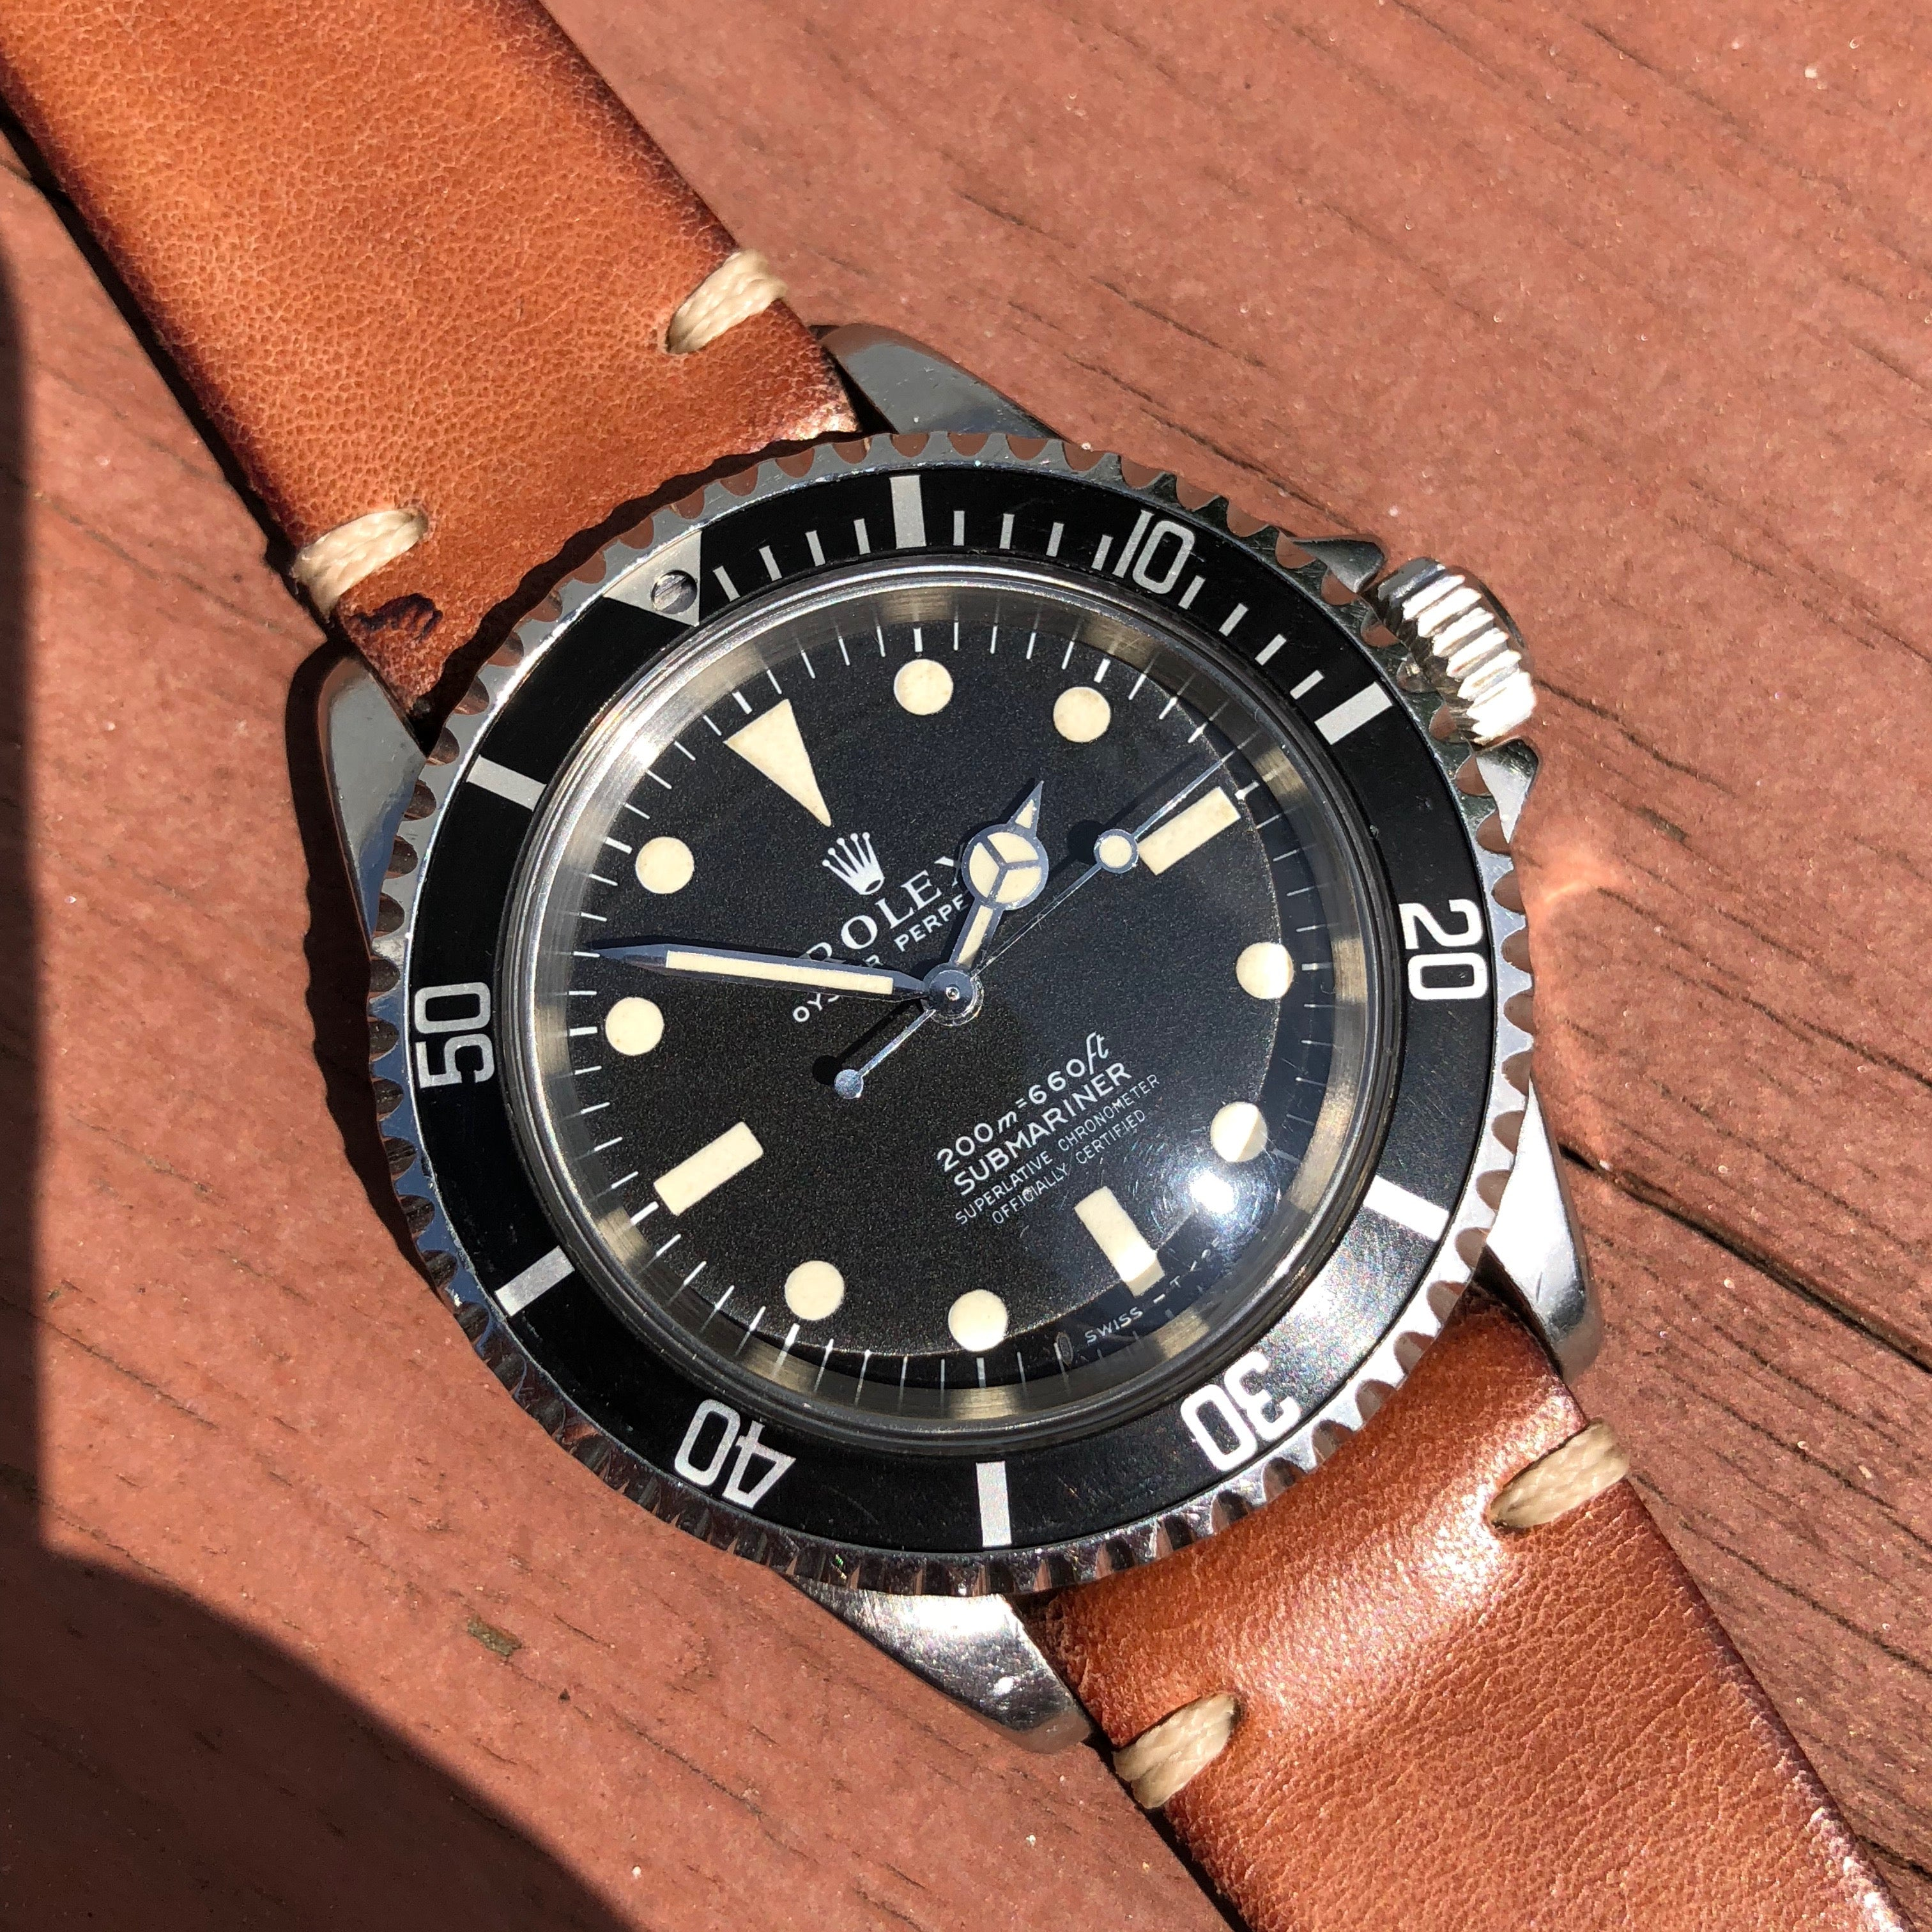 Vintage Rolex Submariner 5512 Meters First Cream Patina Automatic Cal 1570 Wristwatch Circa 1965 - Hashtag Watch Company